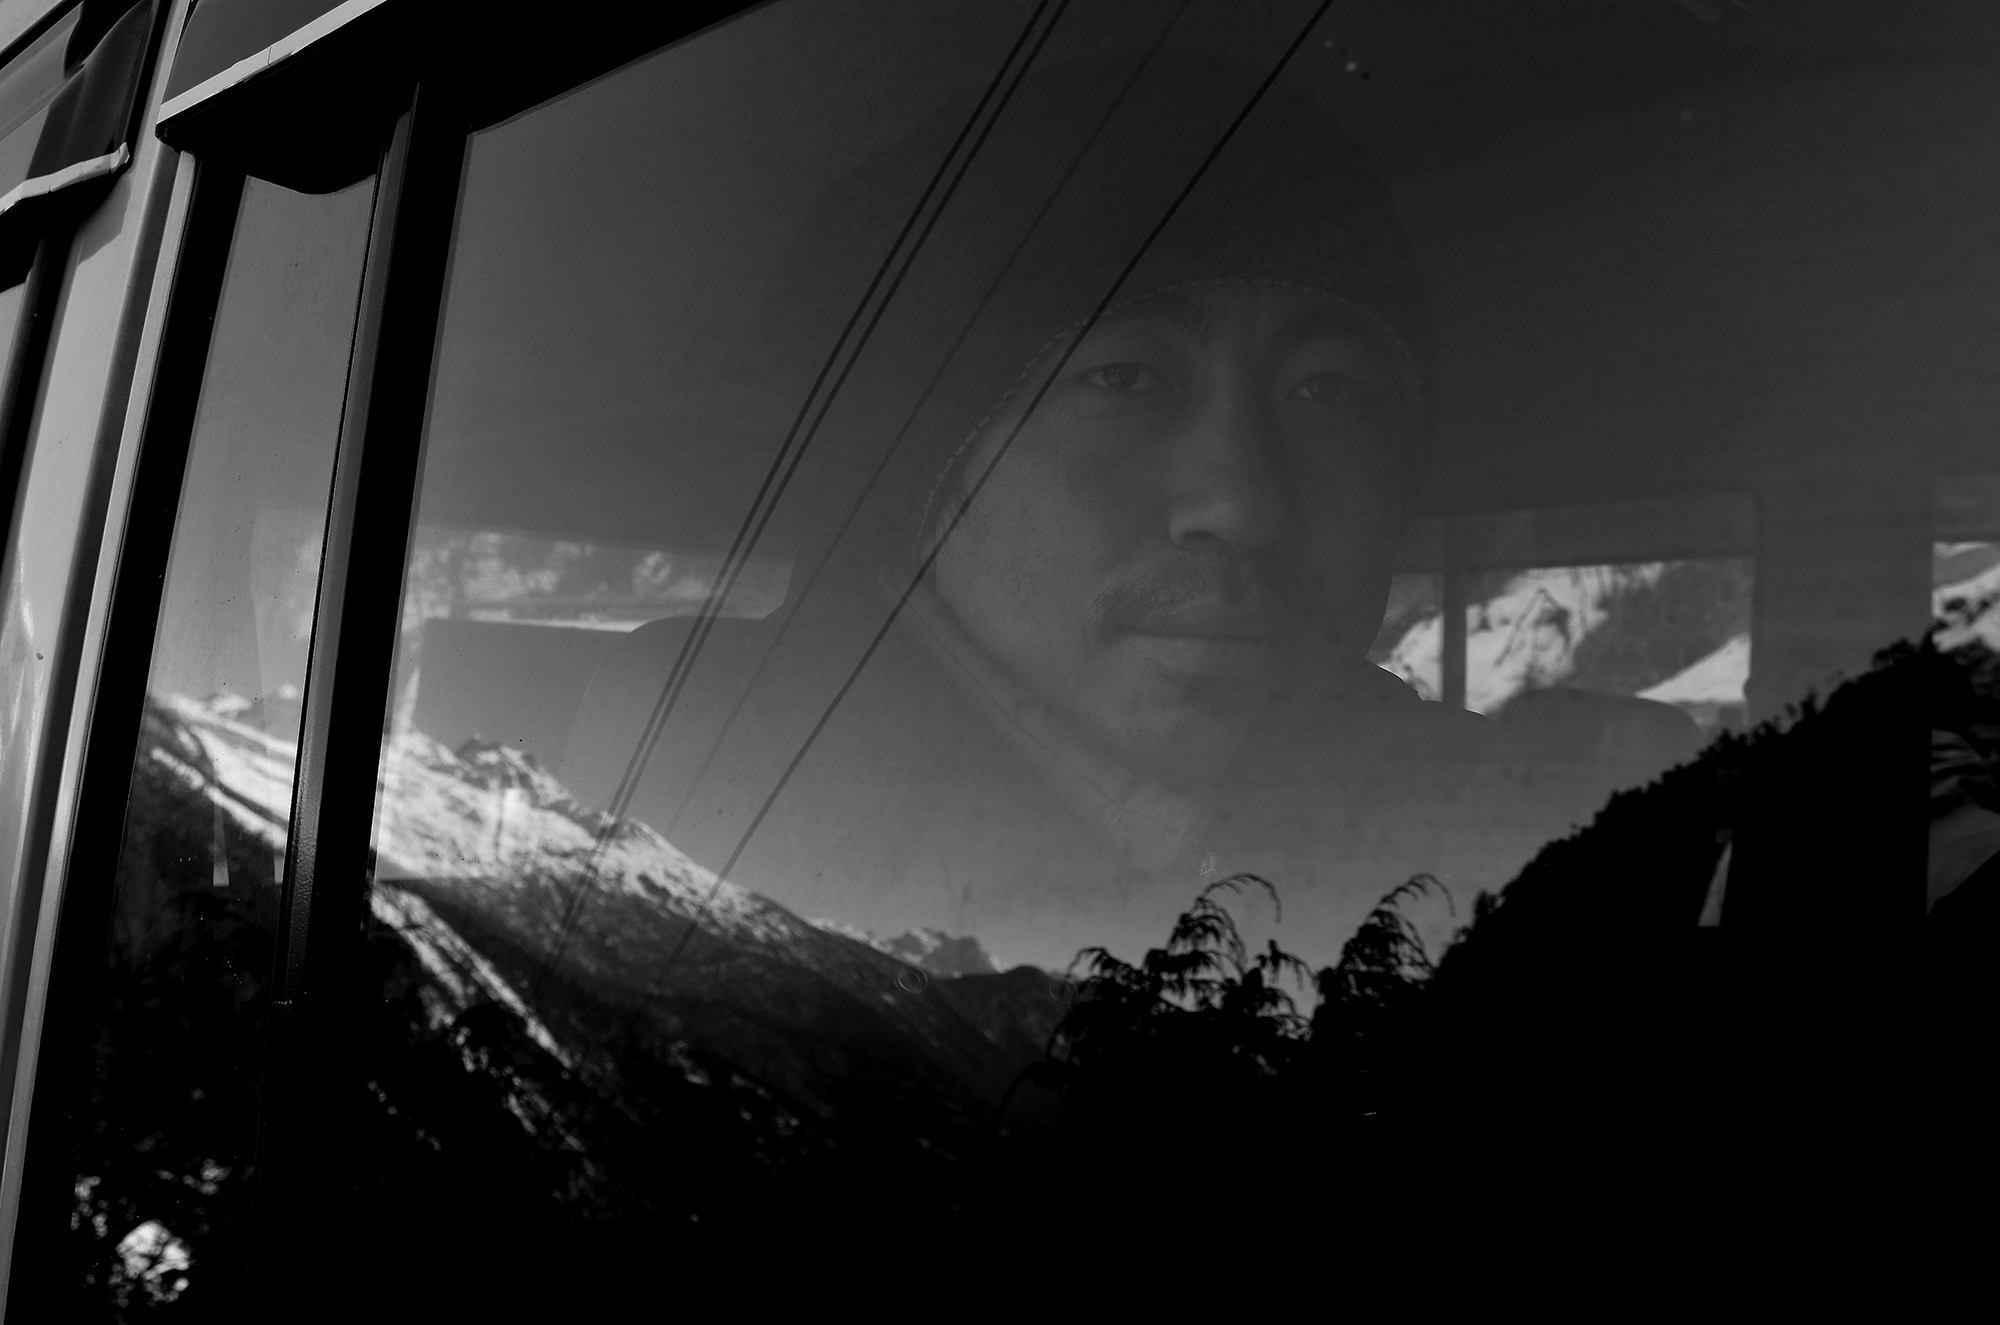 Got this man at a car near Guridongmar lake... He is a Sikkimist driver, who is observing outside through the glass of car window. . Attracted by the blending of nature and human presence... . Enjoy it.